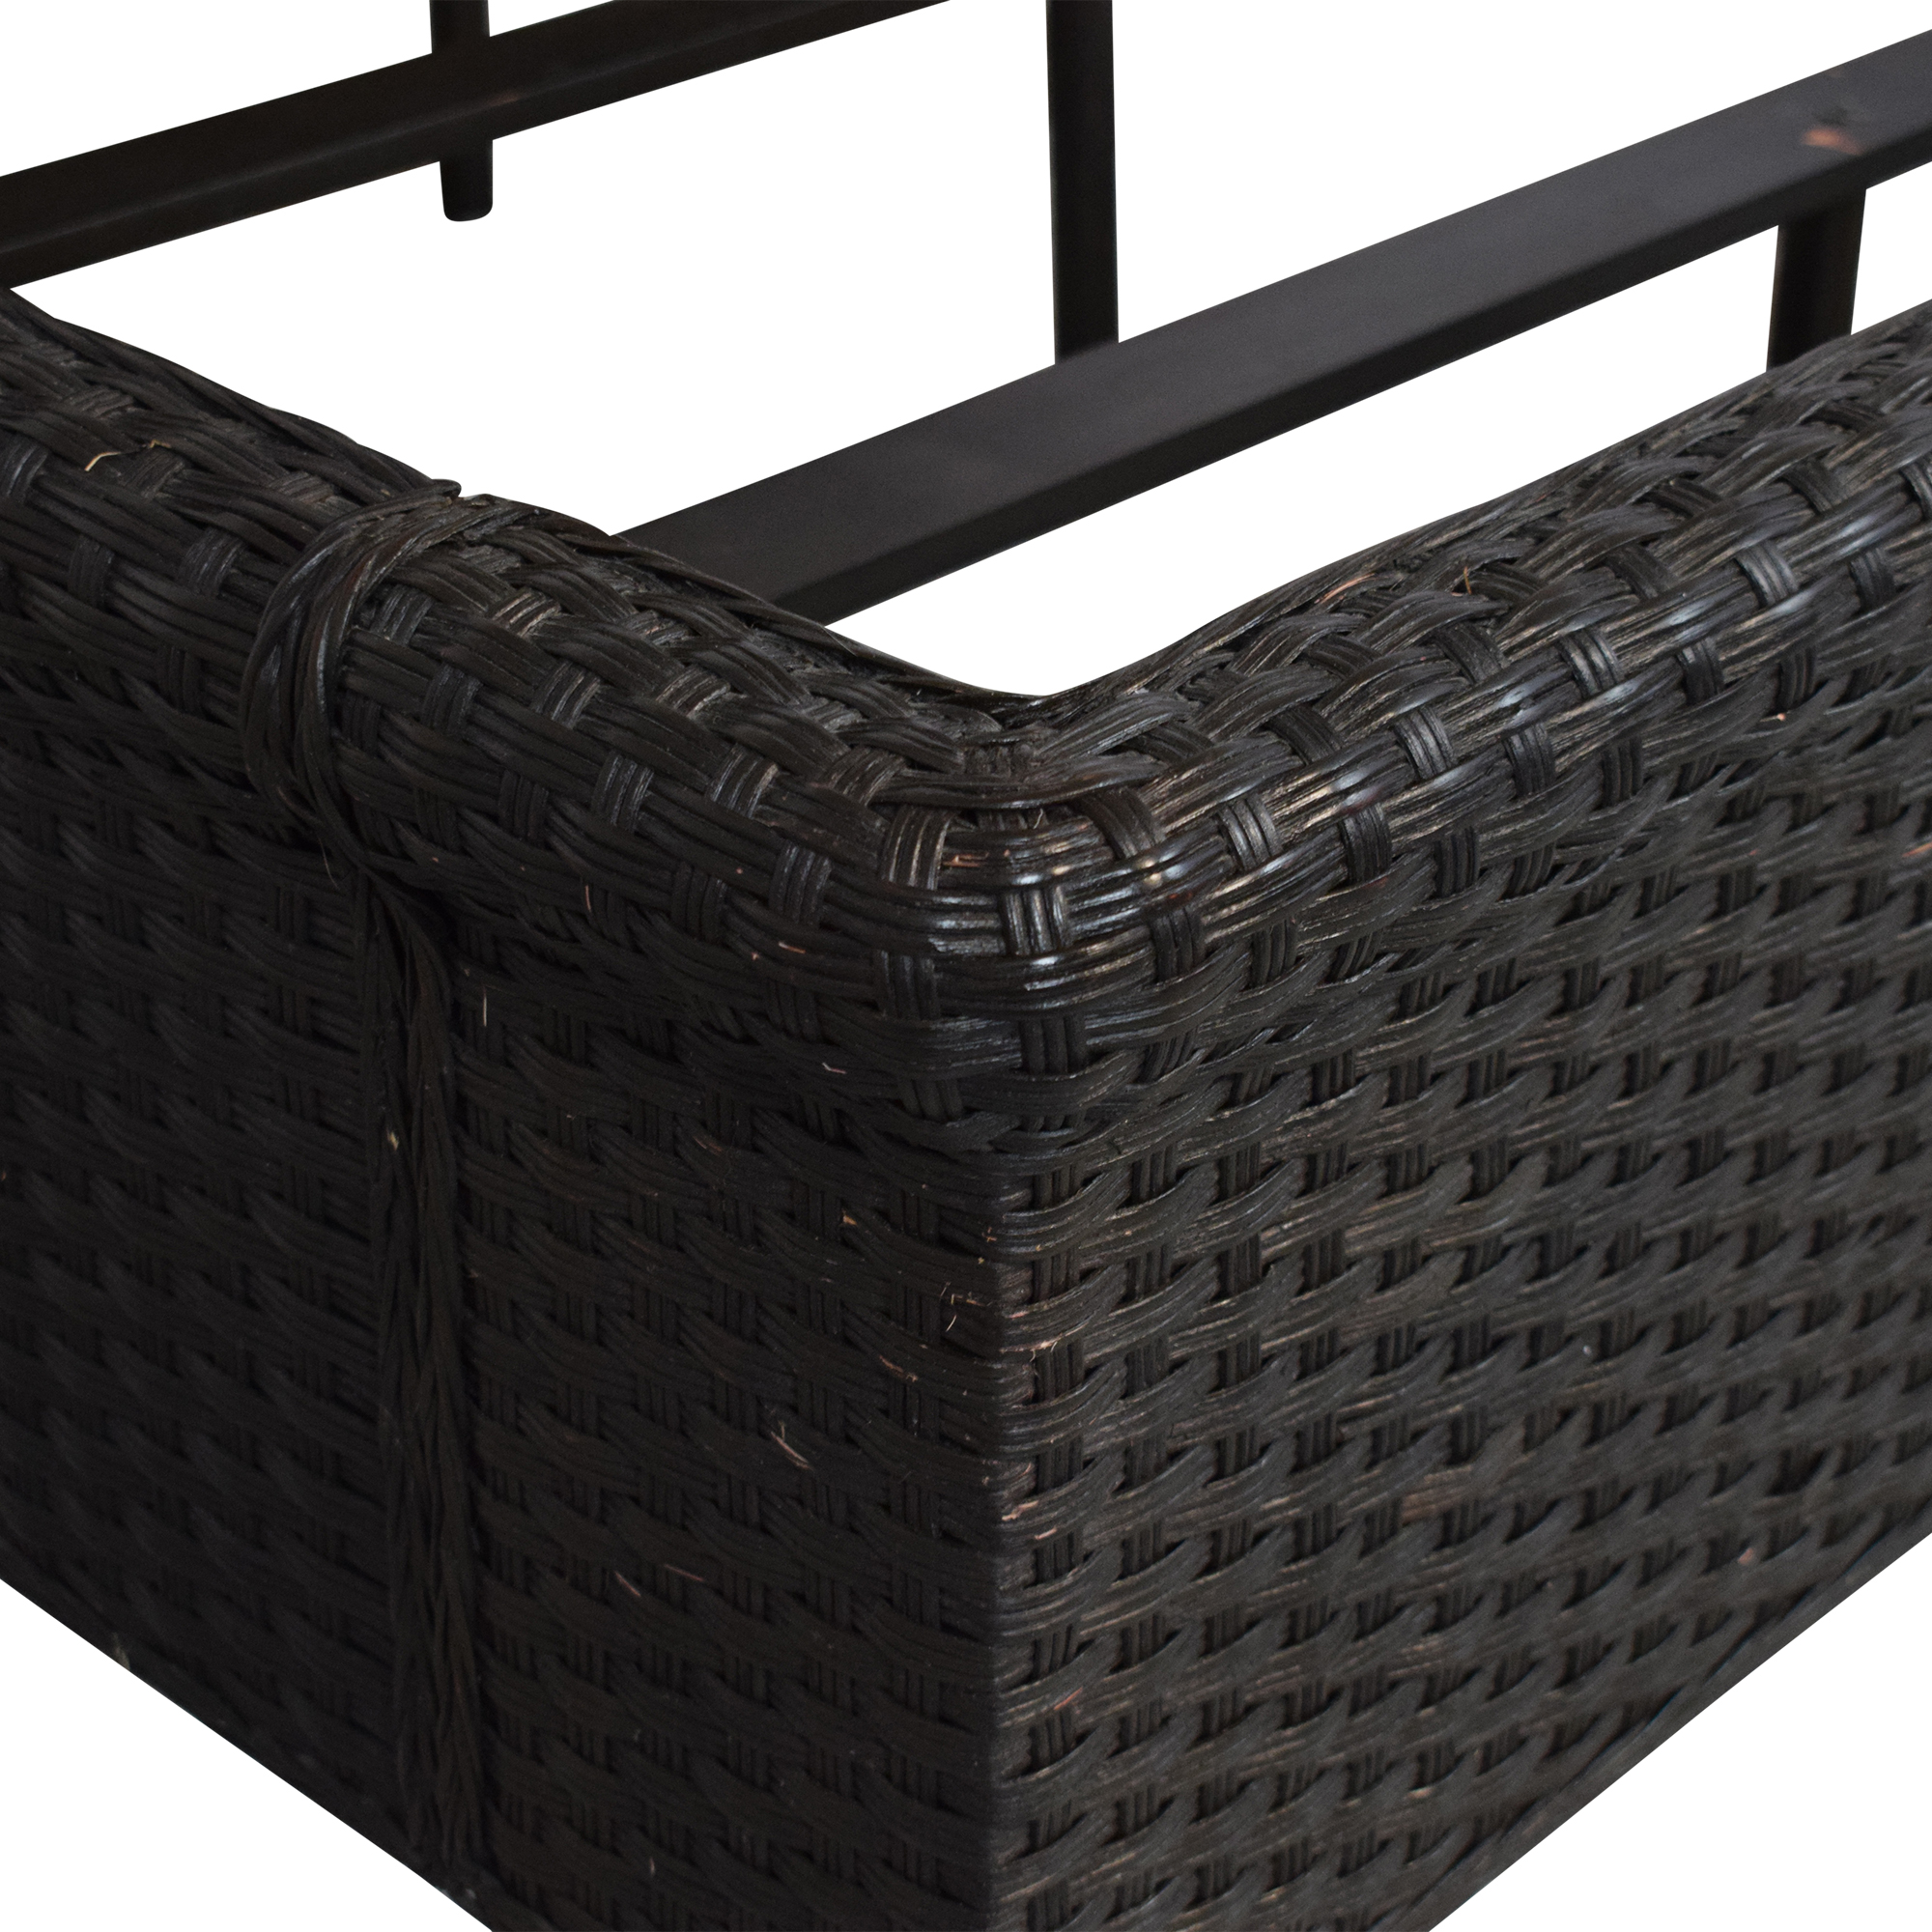 Stanley Furniture Stanley Woven King Bed dimensions